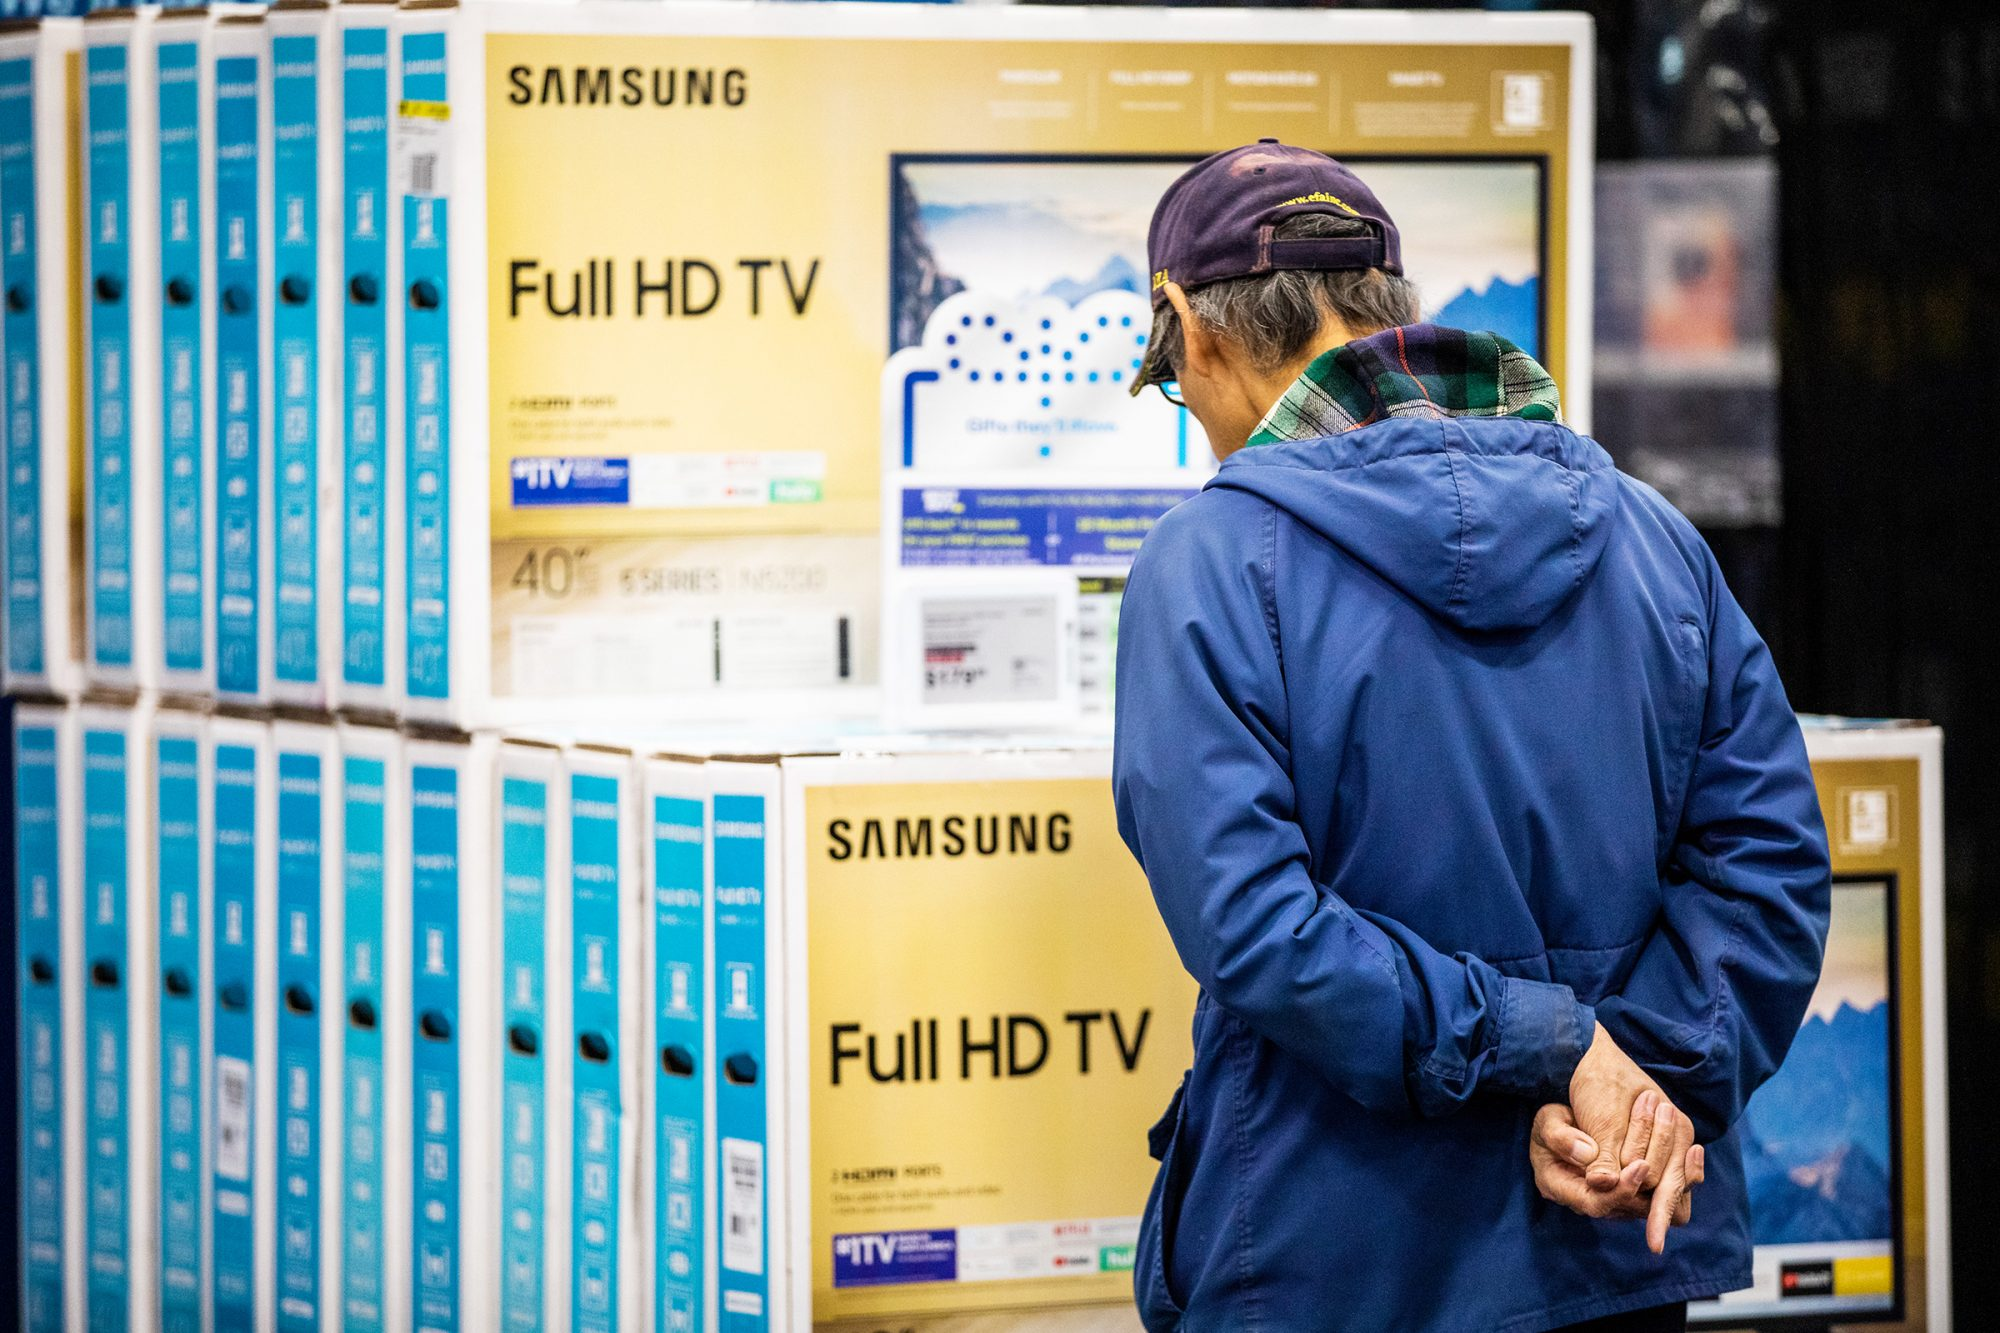 Black Friday shopper looks at televisions at a Best Buy